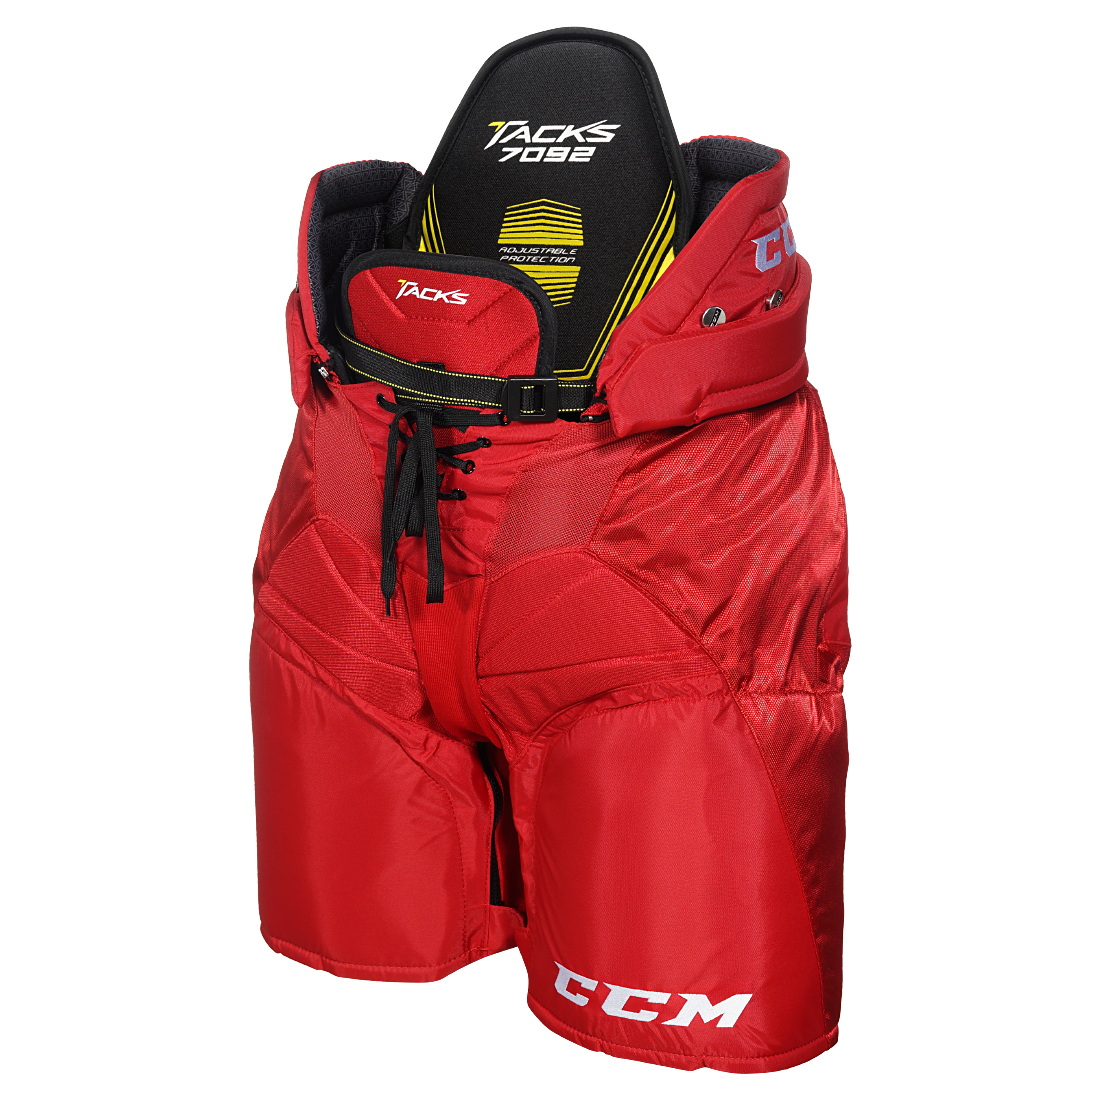 Шорты игрока HP CCM TACKS 7092 SR RED